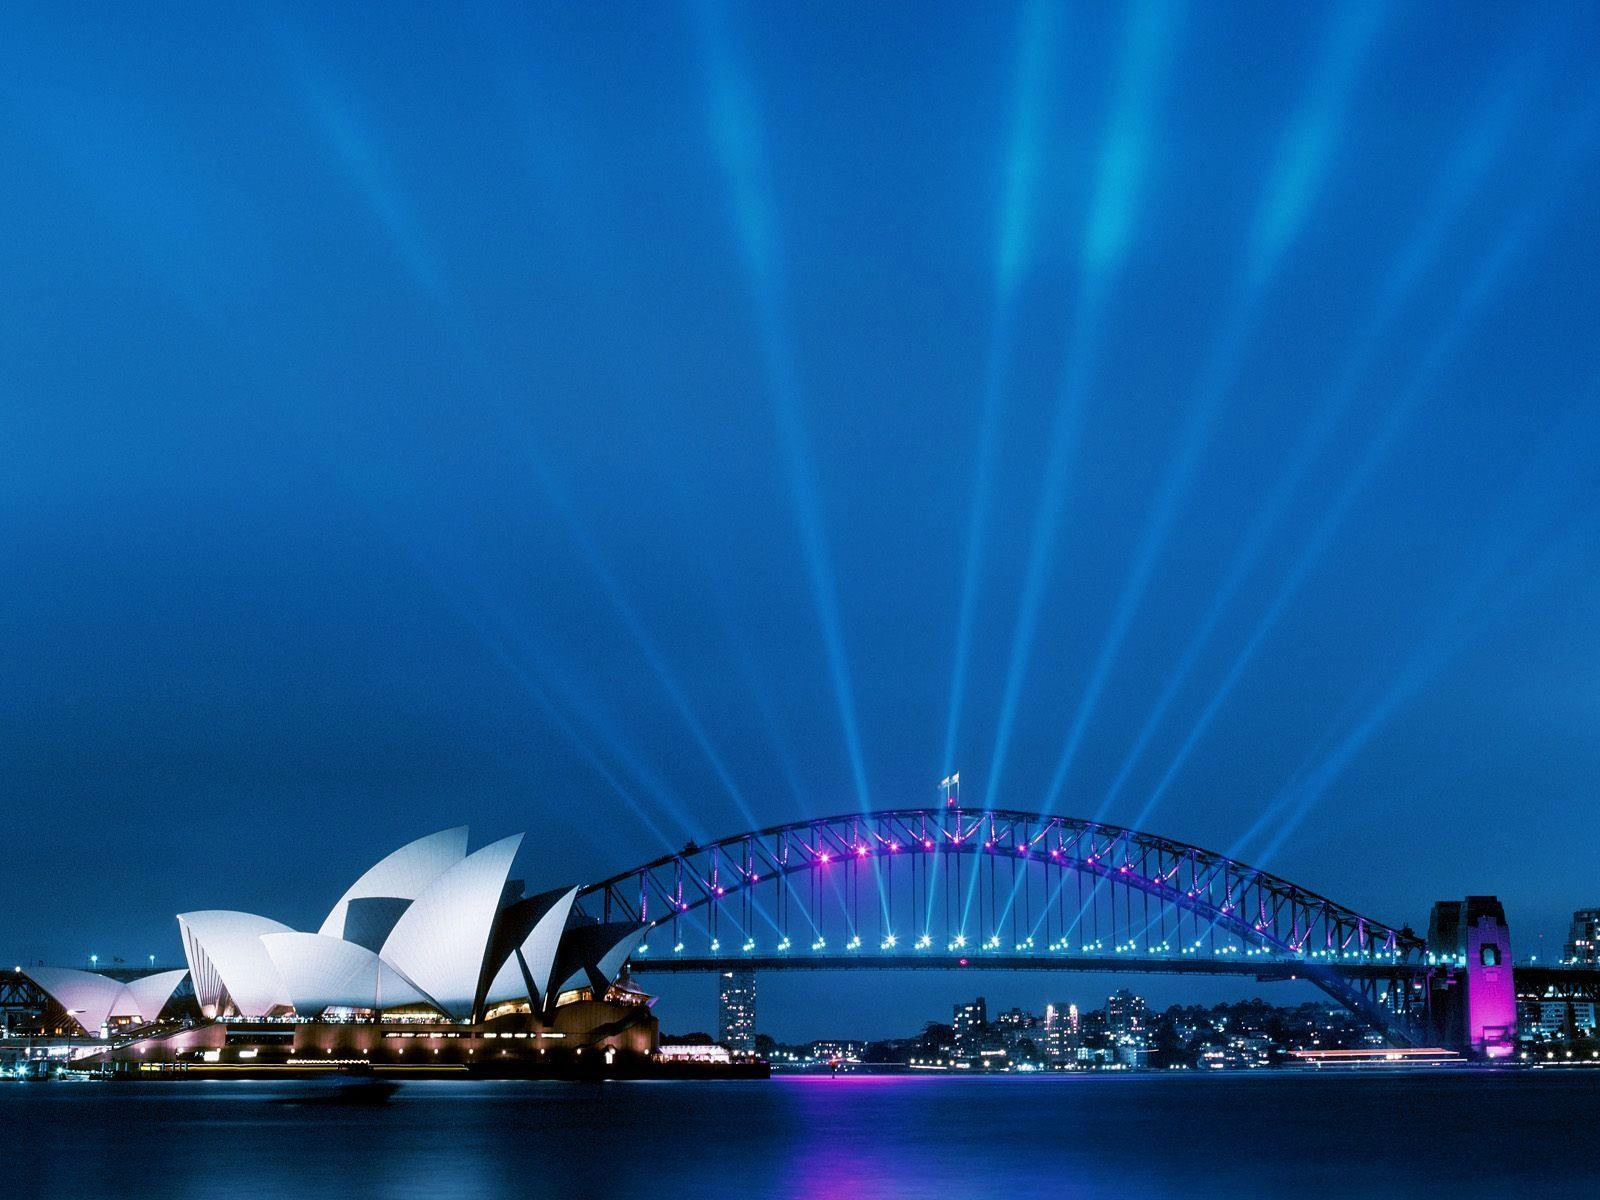 Sydney Opera House at Dusk Wallpapers